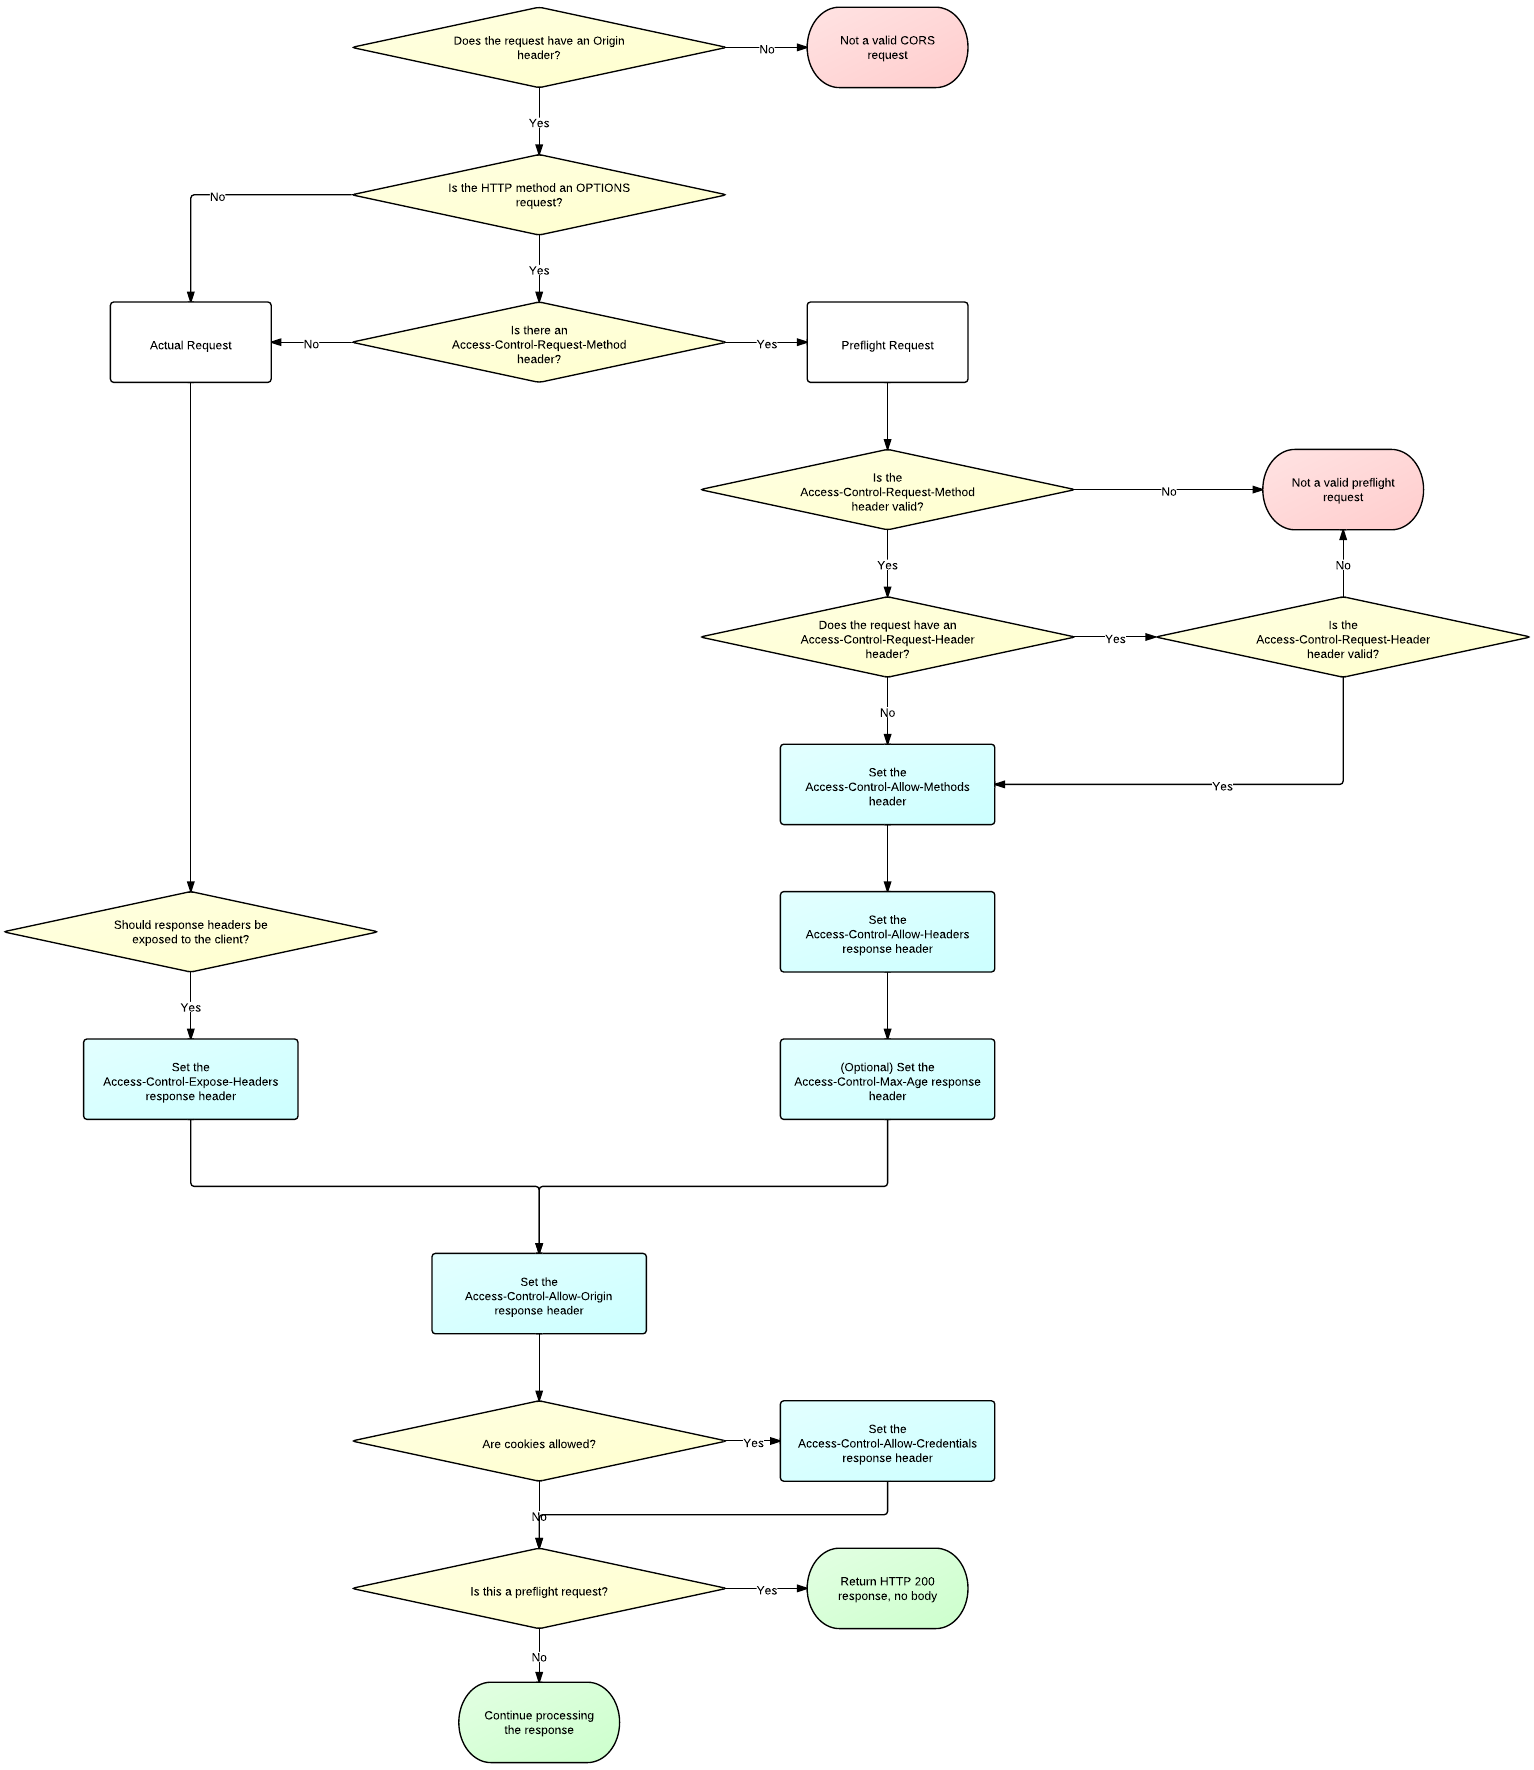 cors_server_flowchart.png